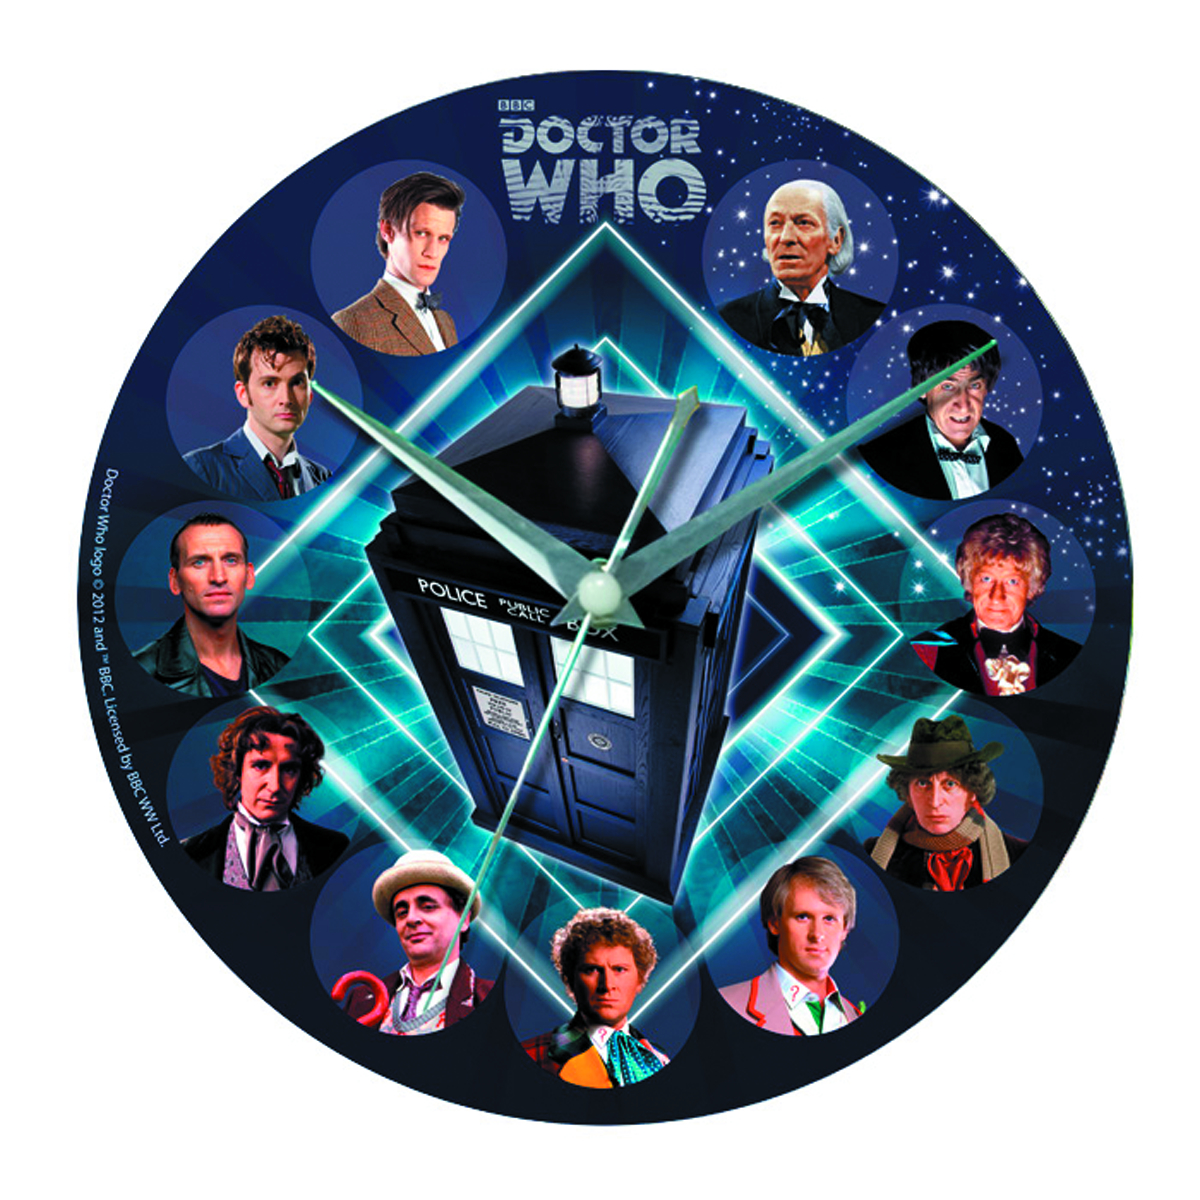 DOCTOR WHO GLASS WALL CLOCK